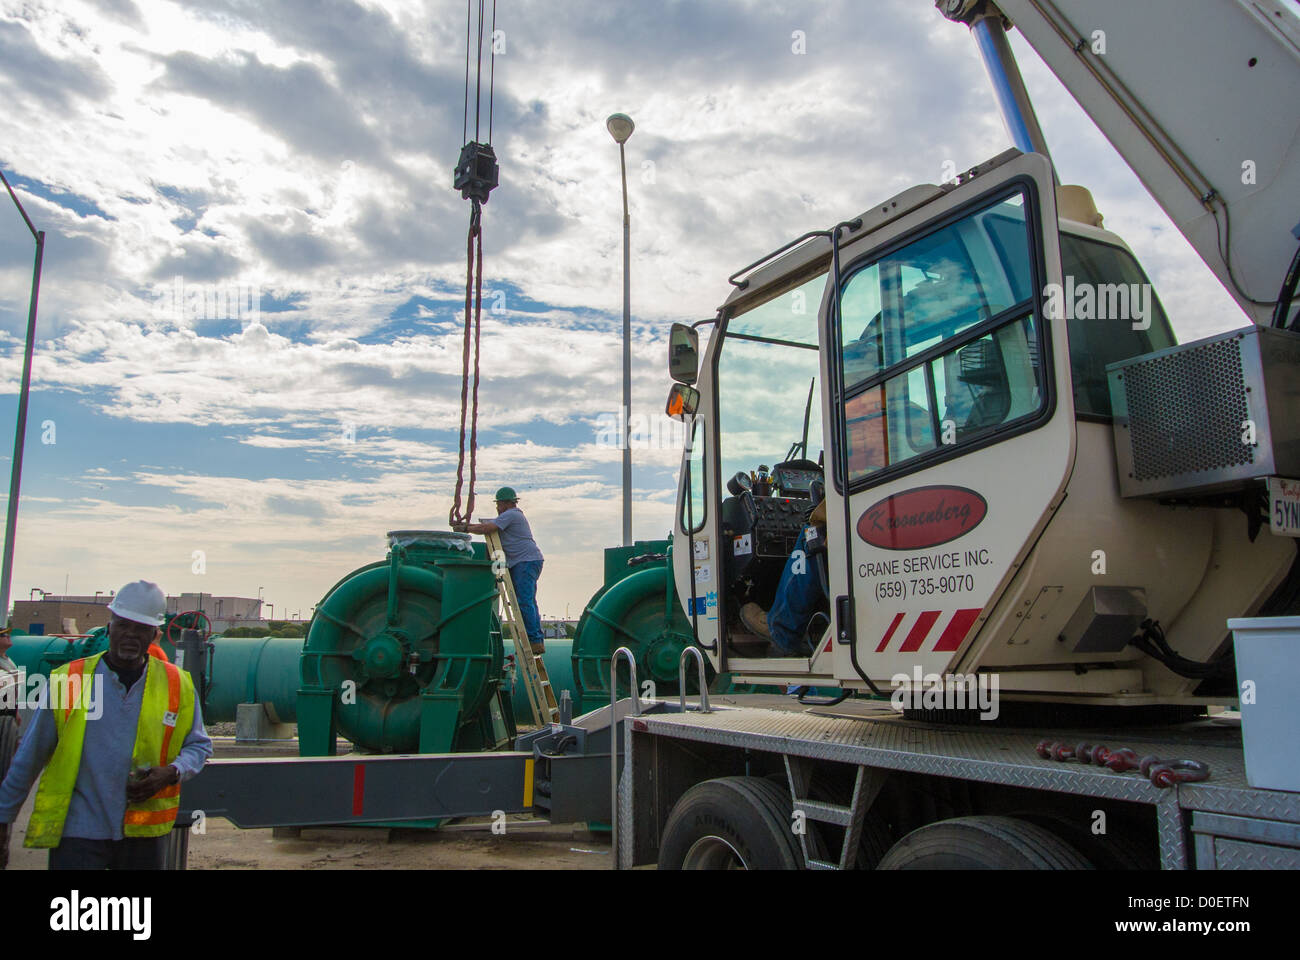 Crane Flatbed Stockfotos & Crane Flatbed Bilder - Alamy